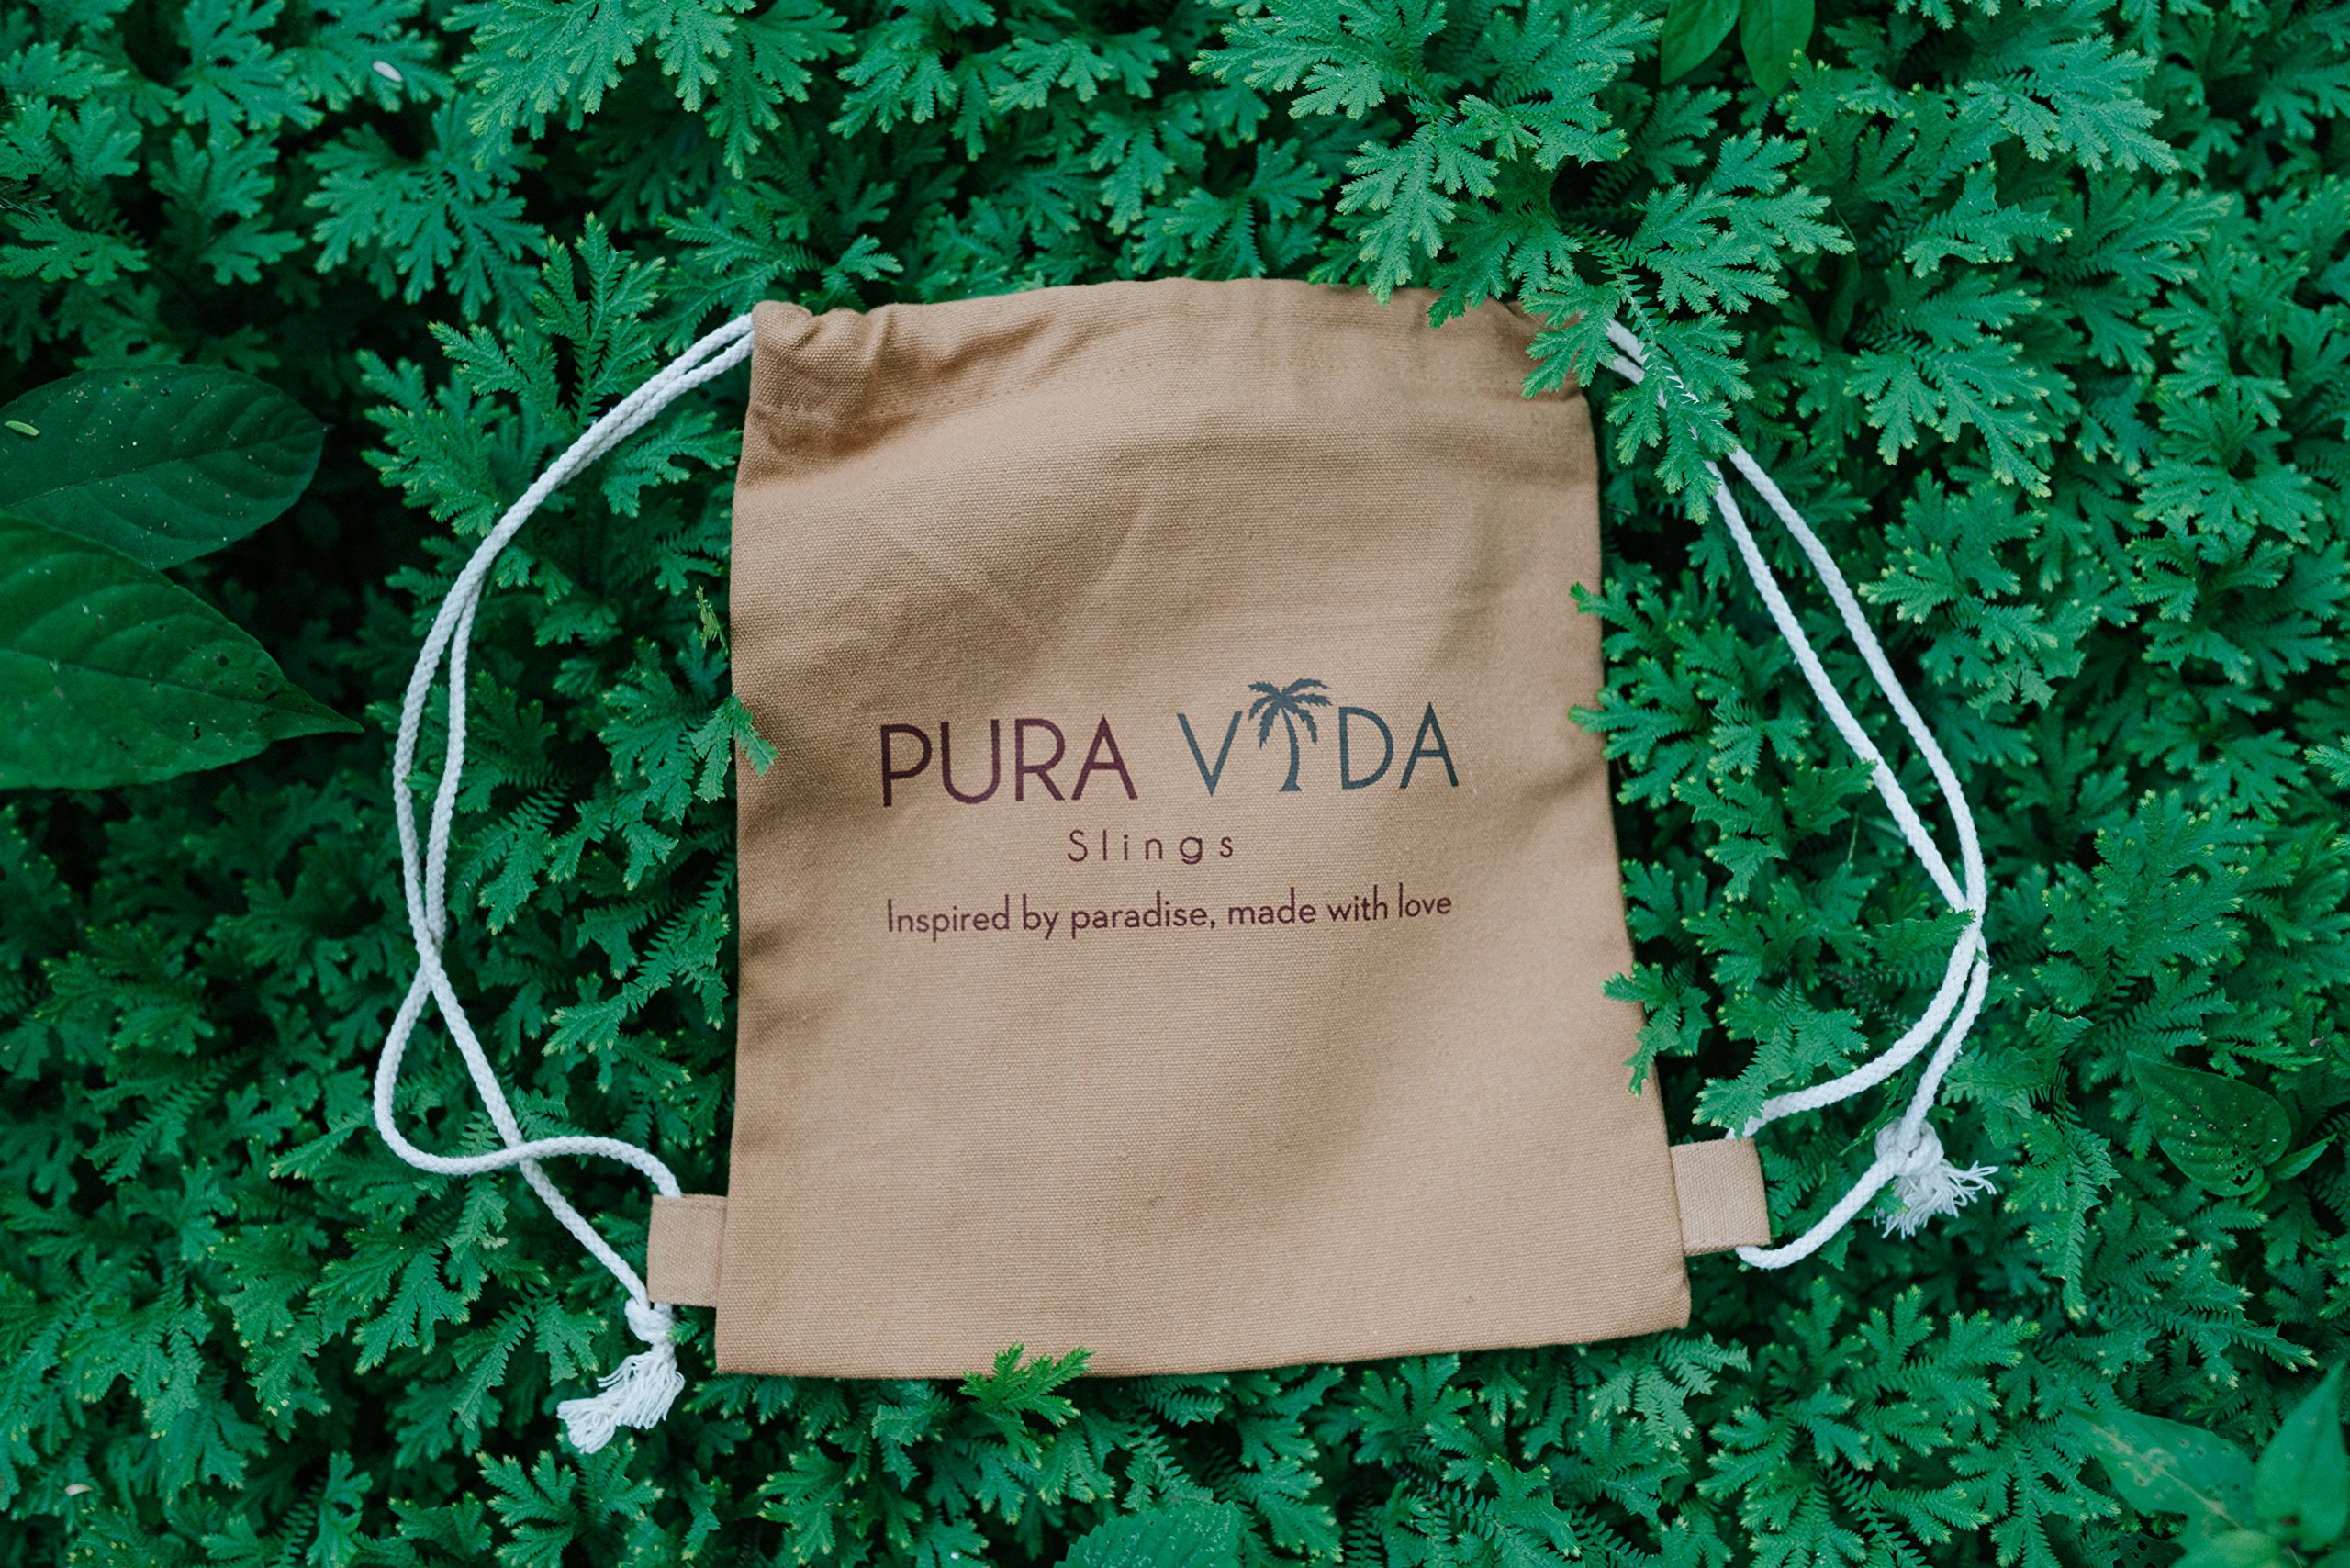 Luxury Ring Sling Baby Carrier – extra-soft bamboo and linen fabric - lightweight wrap - for newborns, infants and toddlers - perfect baby shower gift – great for new Dad too - nursing cover by Pura Vida Slings (Image #5)